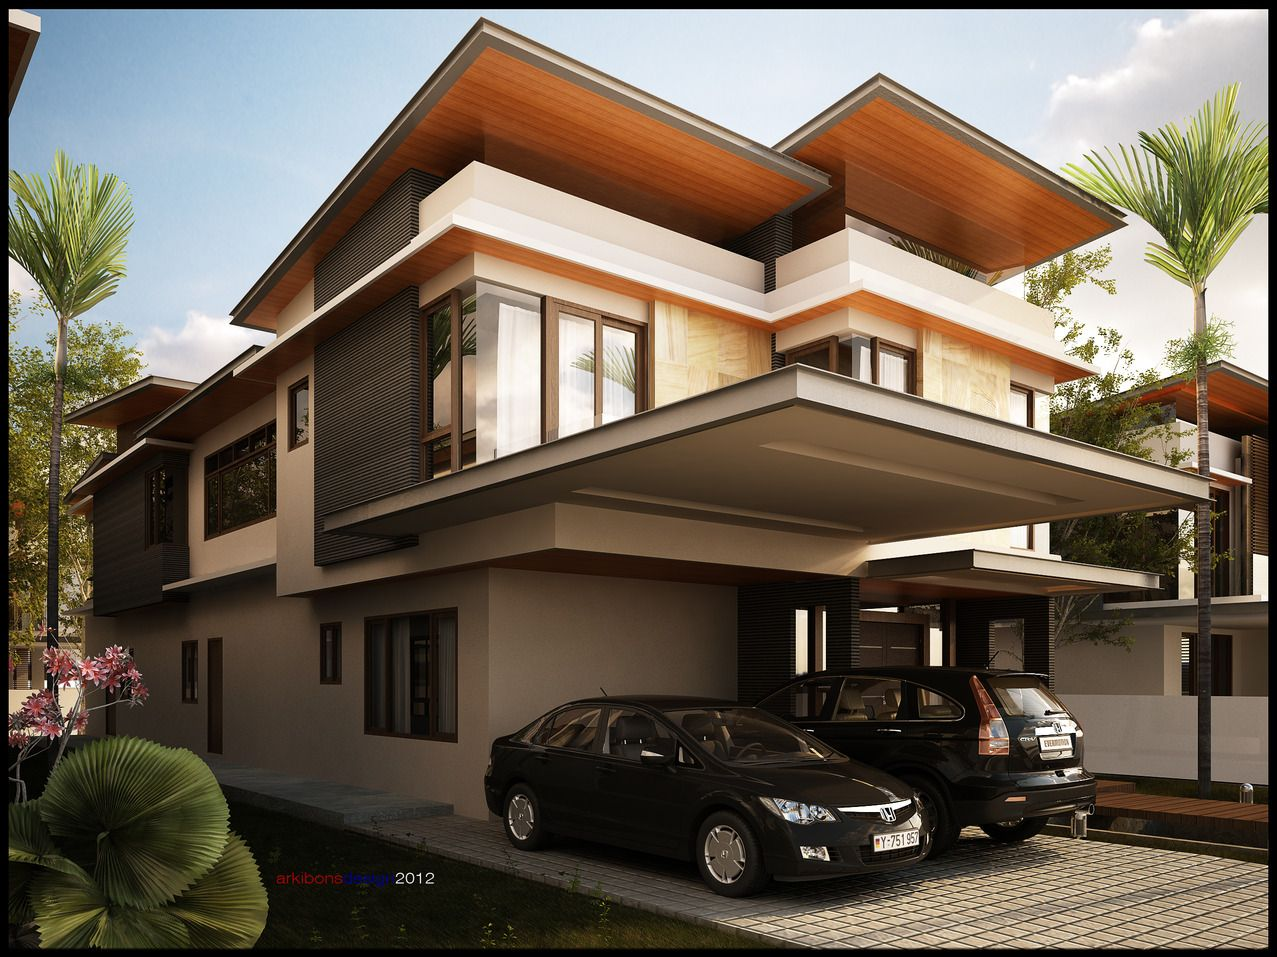 Best Kitchen Gallery: Cgpinoy Org T23112 Bahay Ni Jeff Modern Tropical of Tropical Minimalist House  on rachelxblog.com